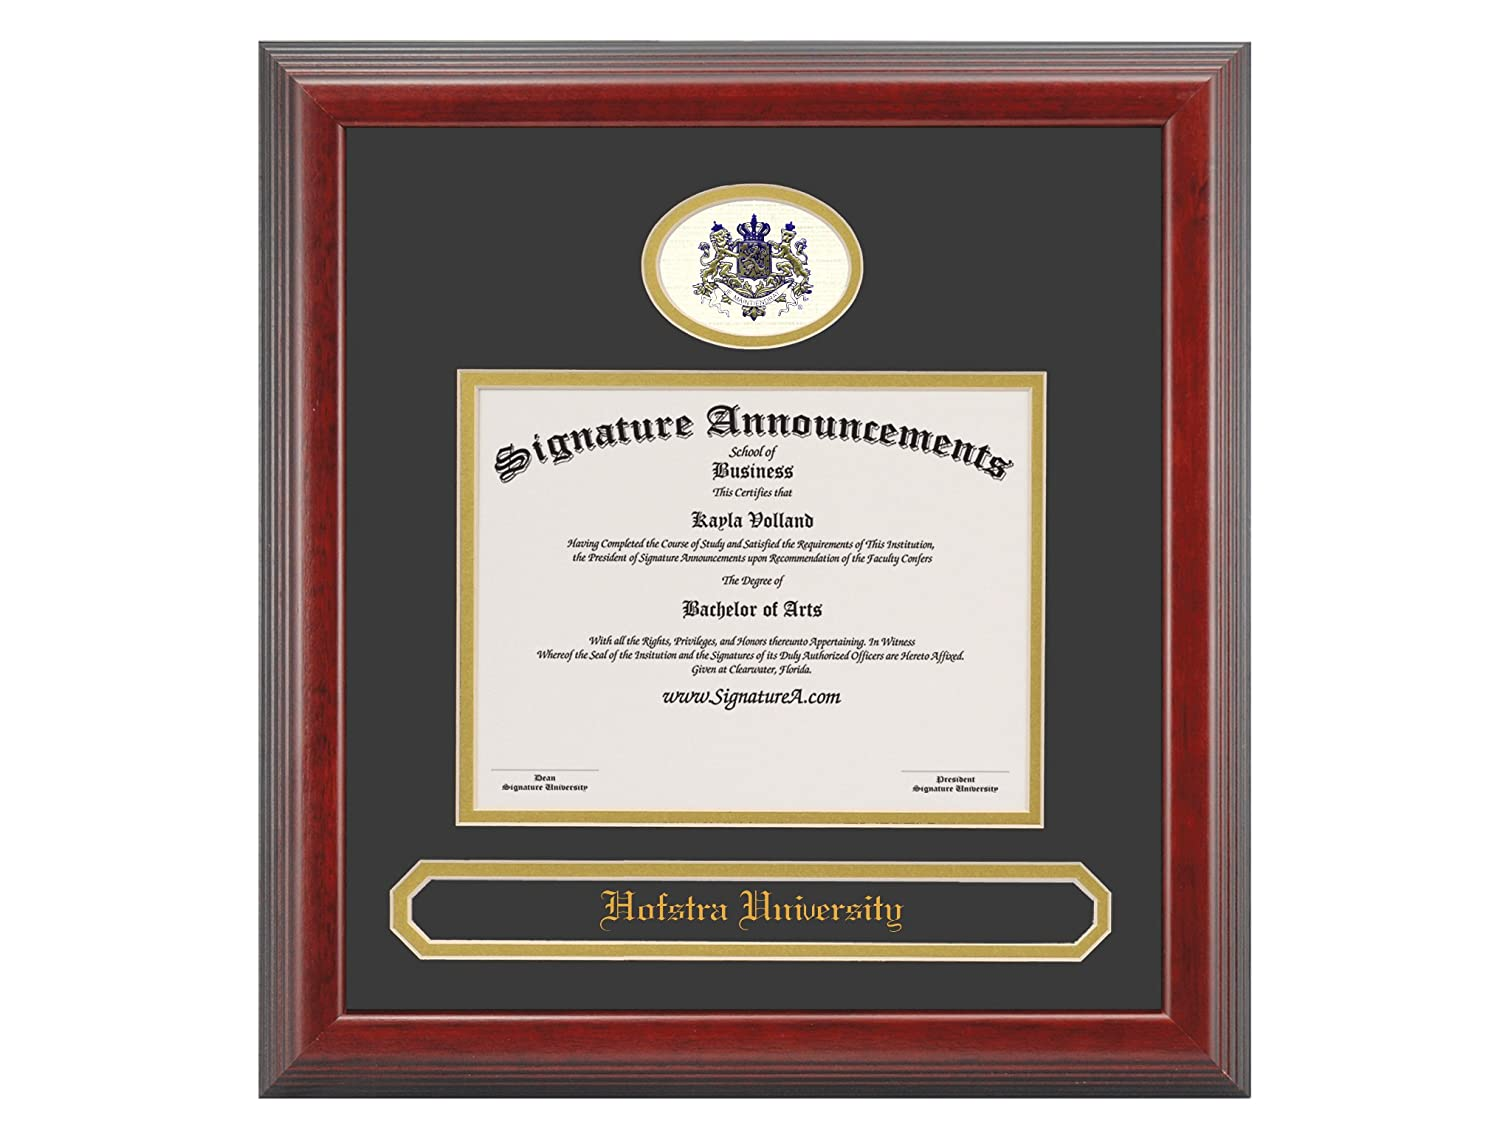 Signature Announcements Hofstra-University Doctorate Sculpted Foil Seal /& Name Graduation Diploma Frame 20 x 20 Cherry